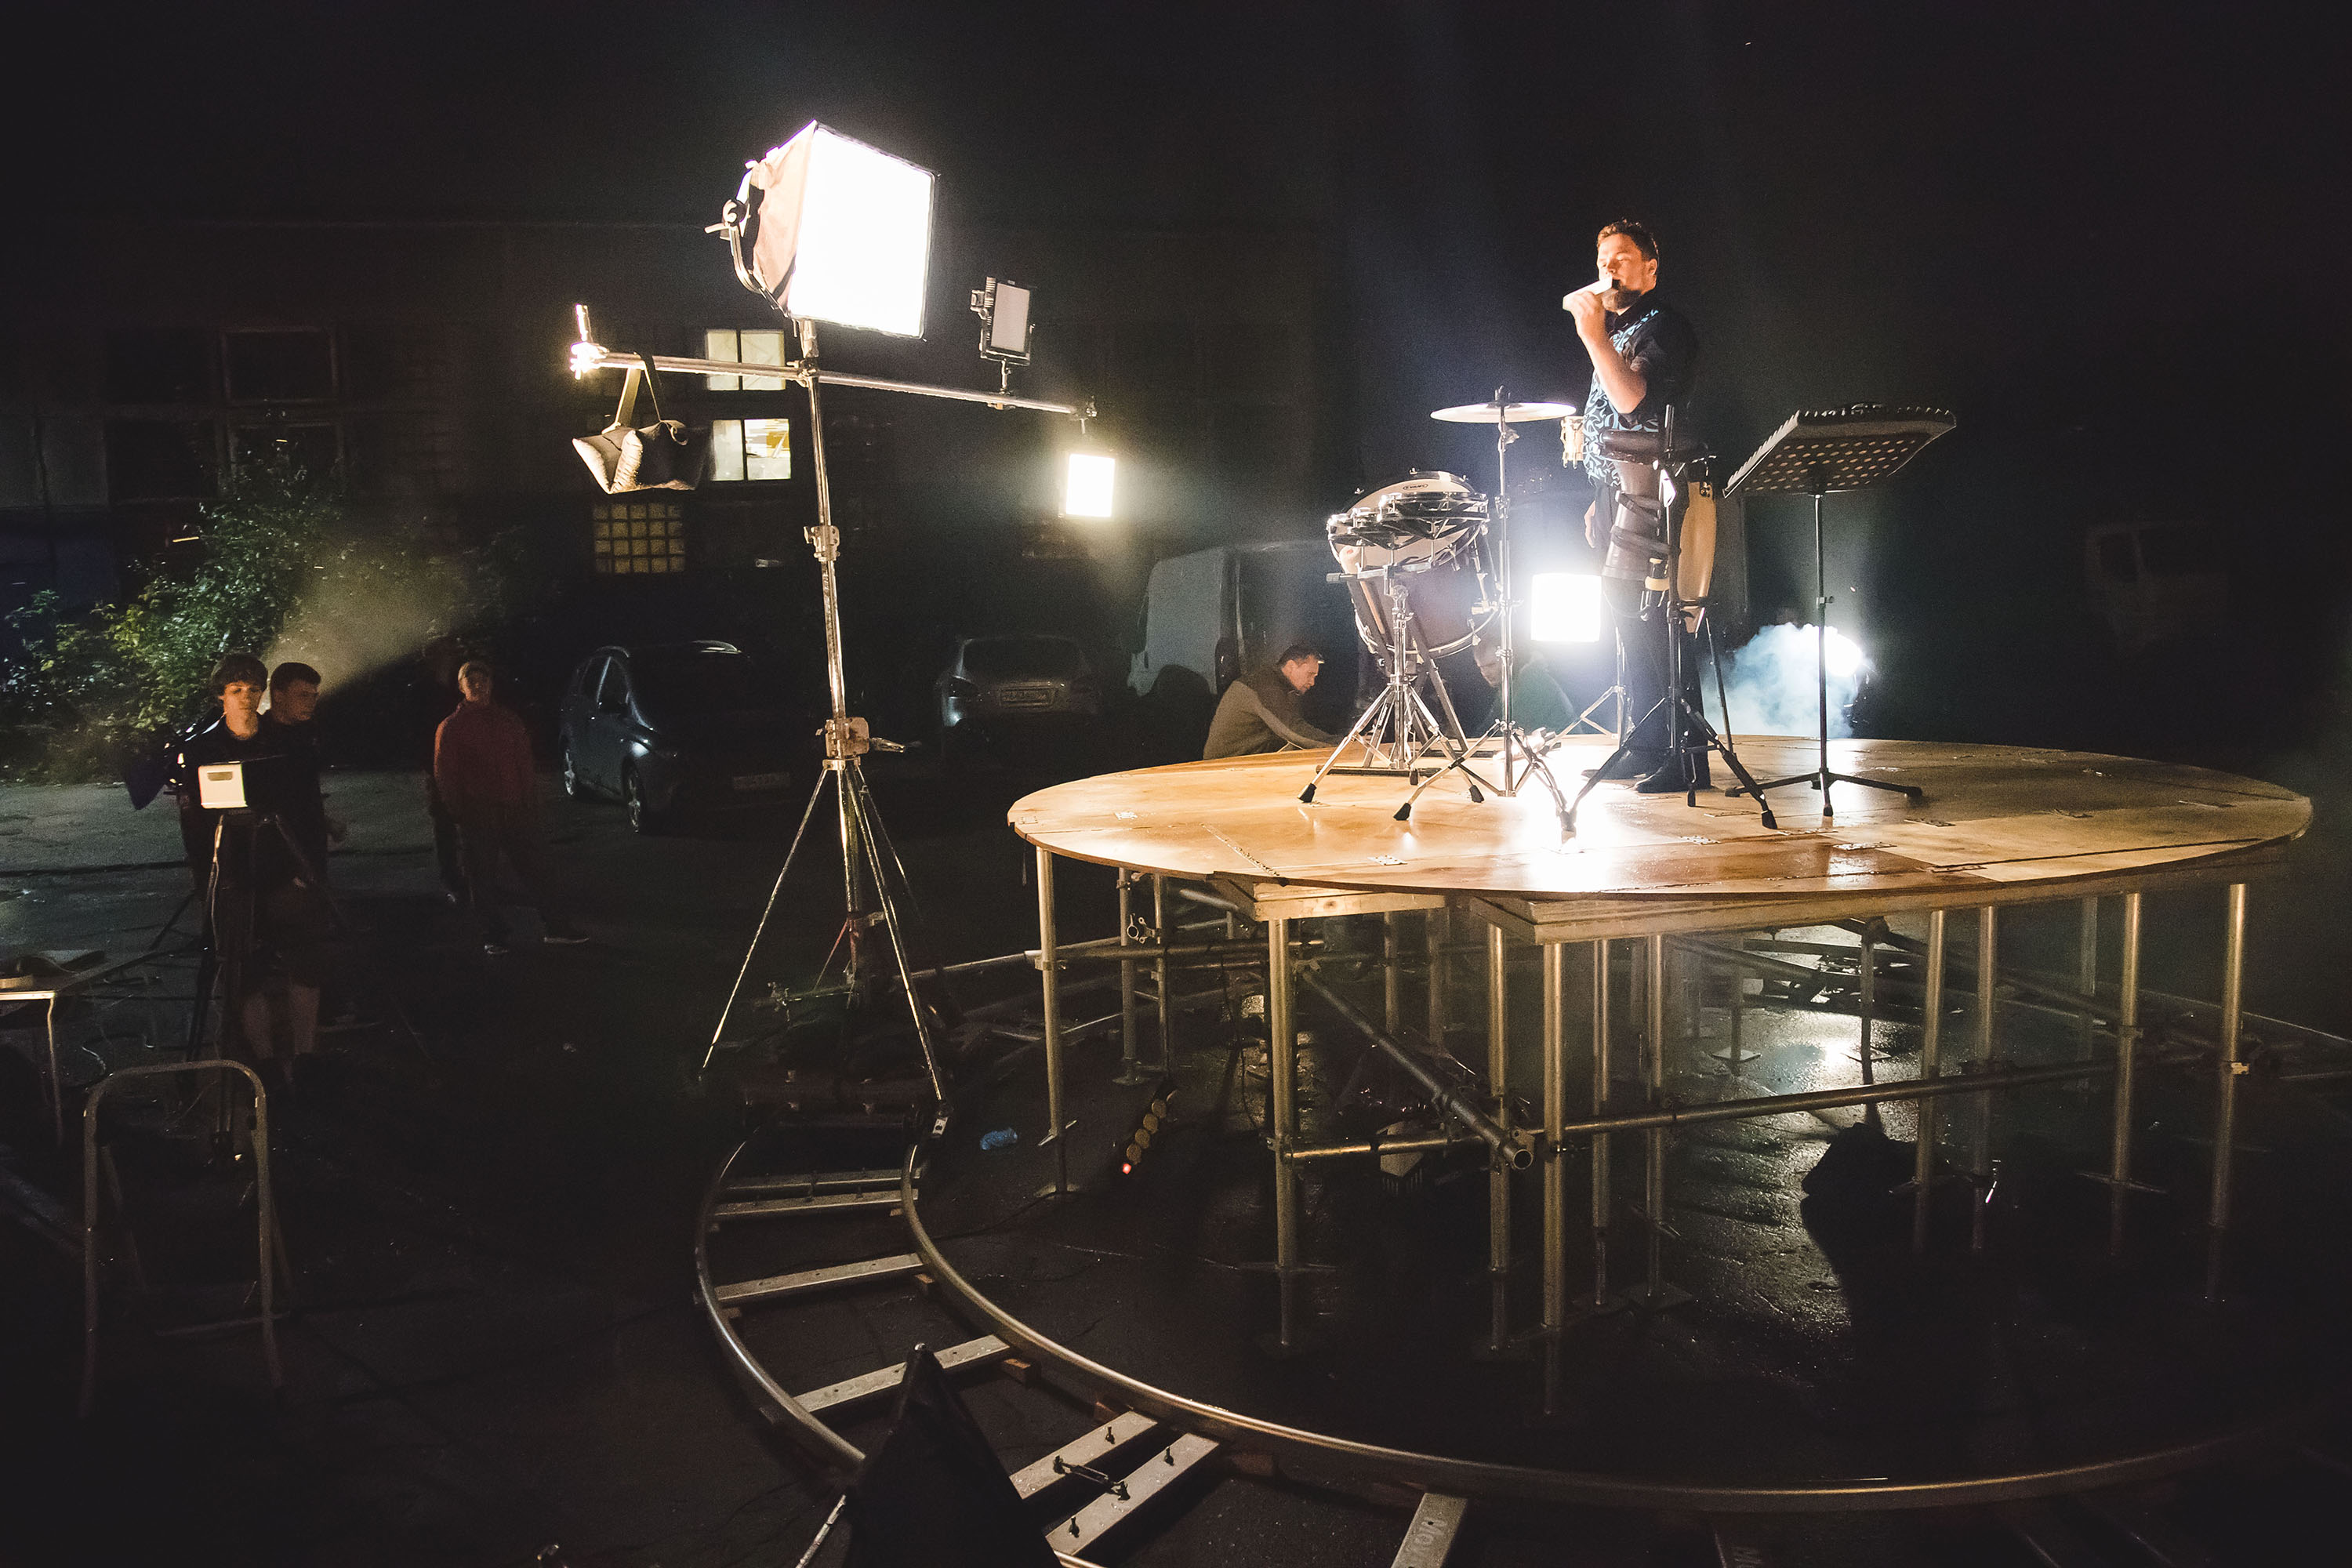 The making of a debut video